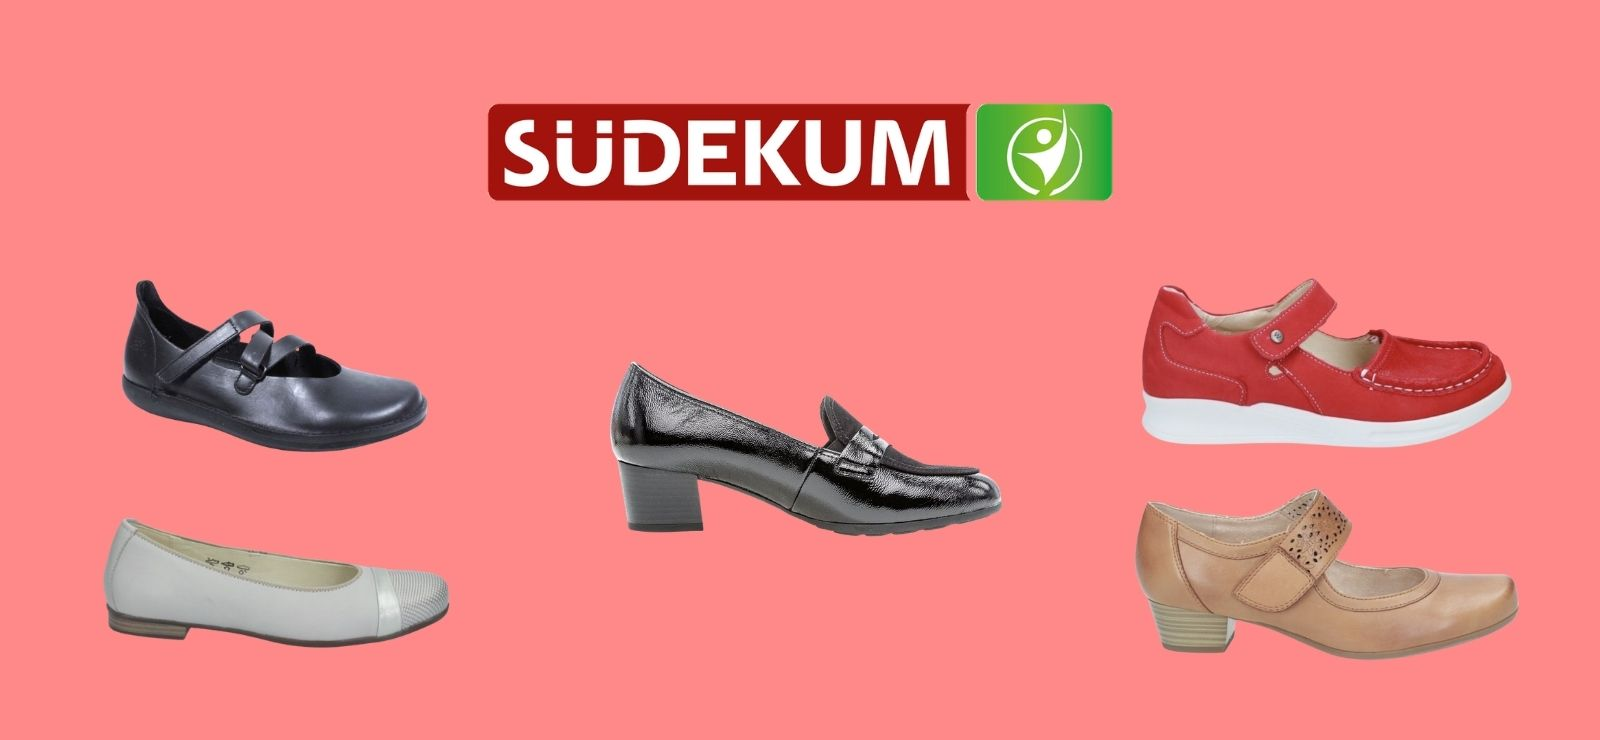 Damen Ballerinas und Pumps